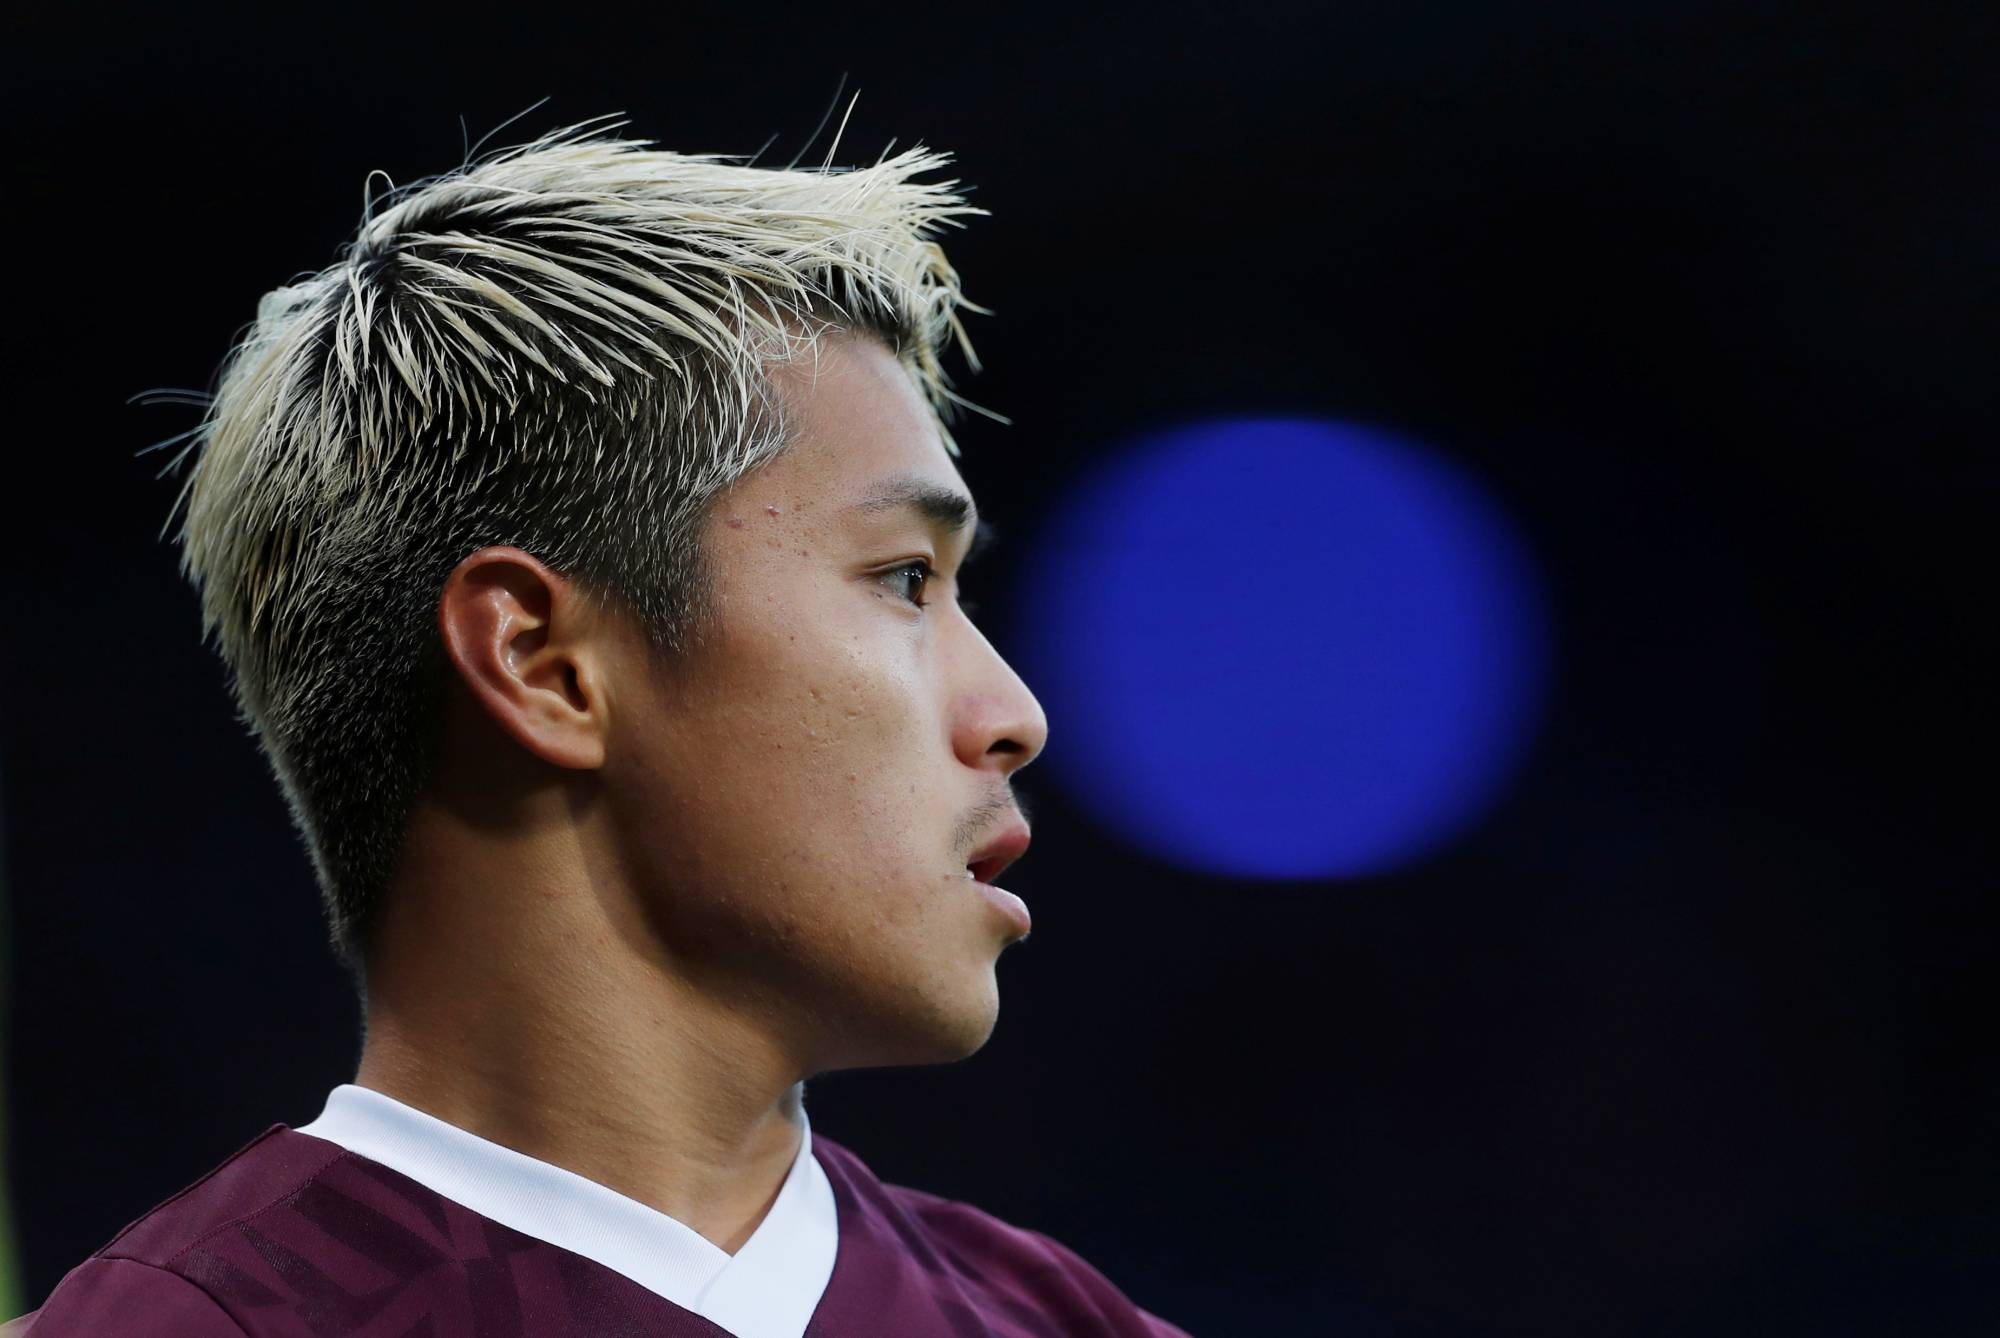 Midfielder Ryotaro Meshino has been loaned to Portugal's Rio Ave after spending last season on loan at Scotland's Hearts. | REUTERS